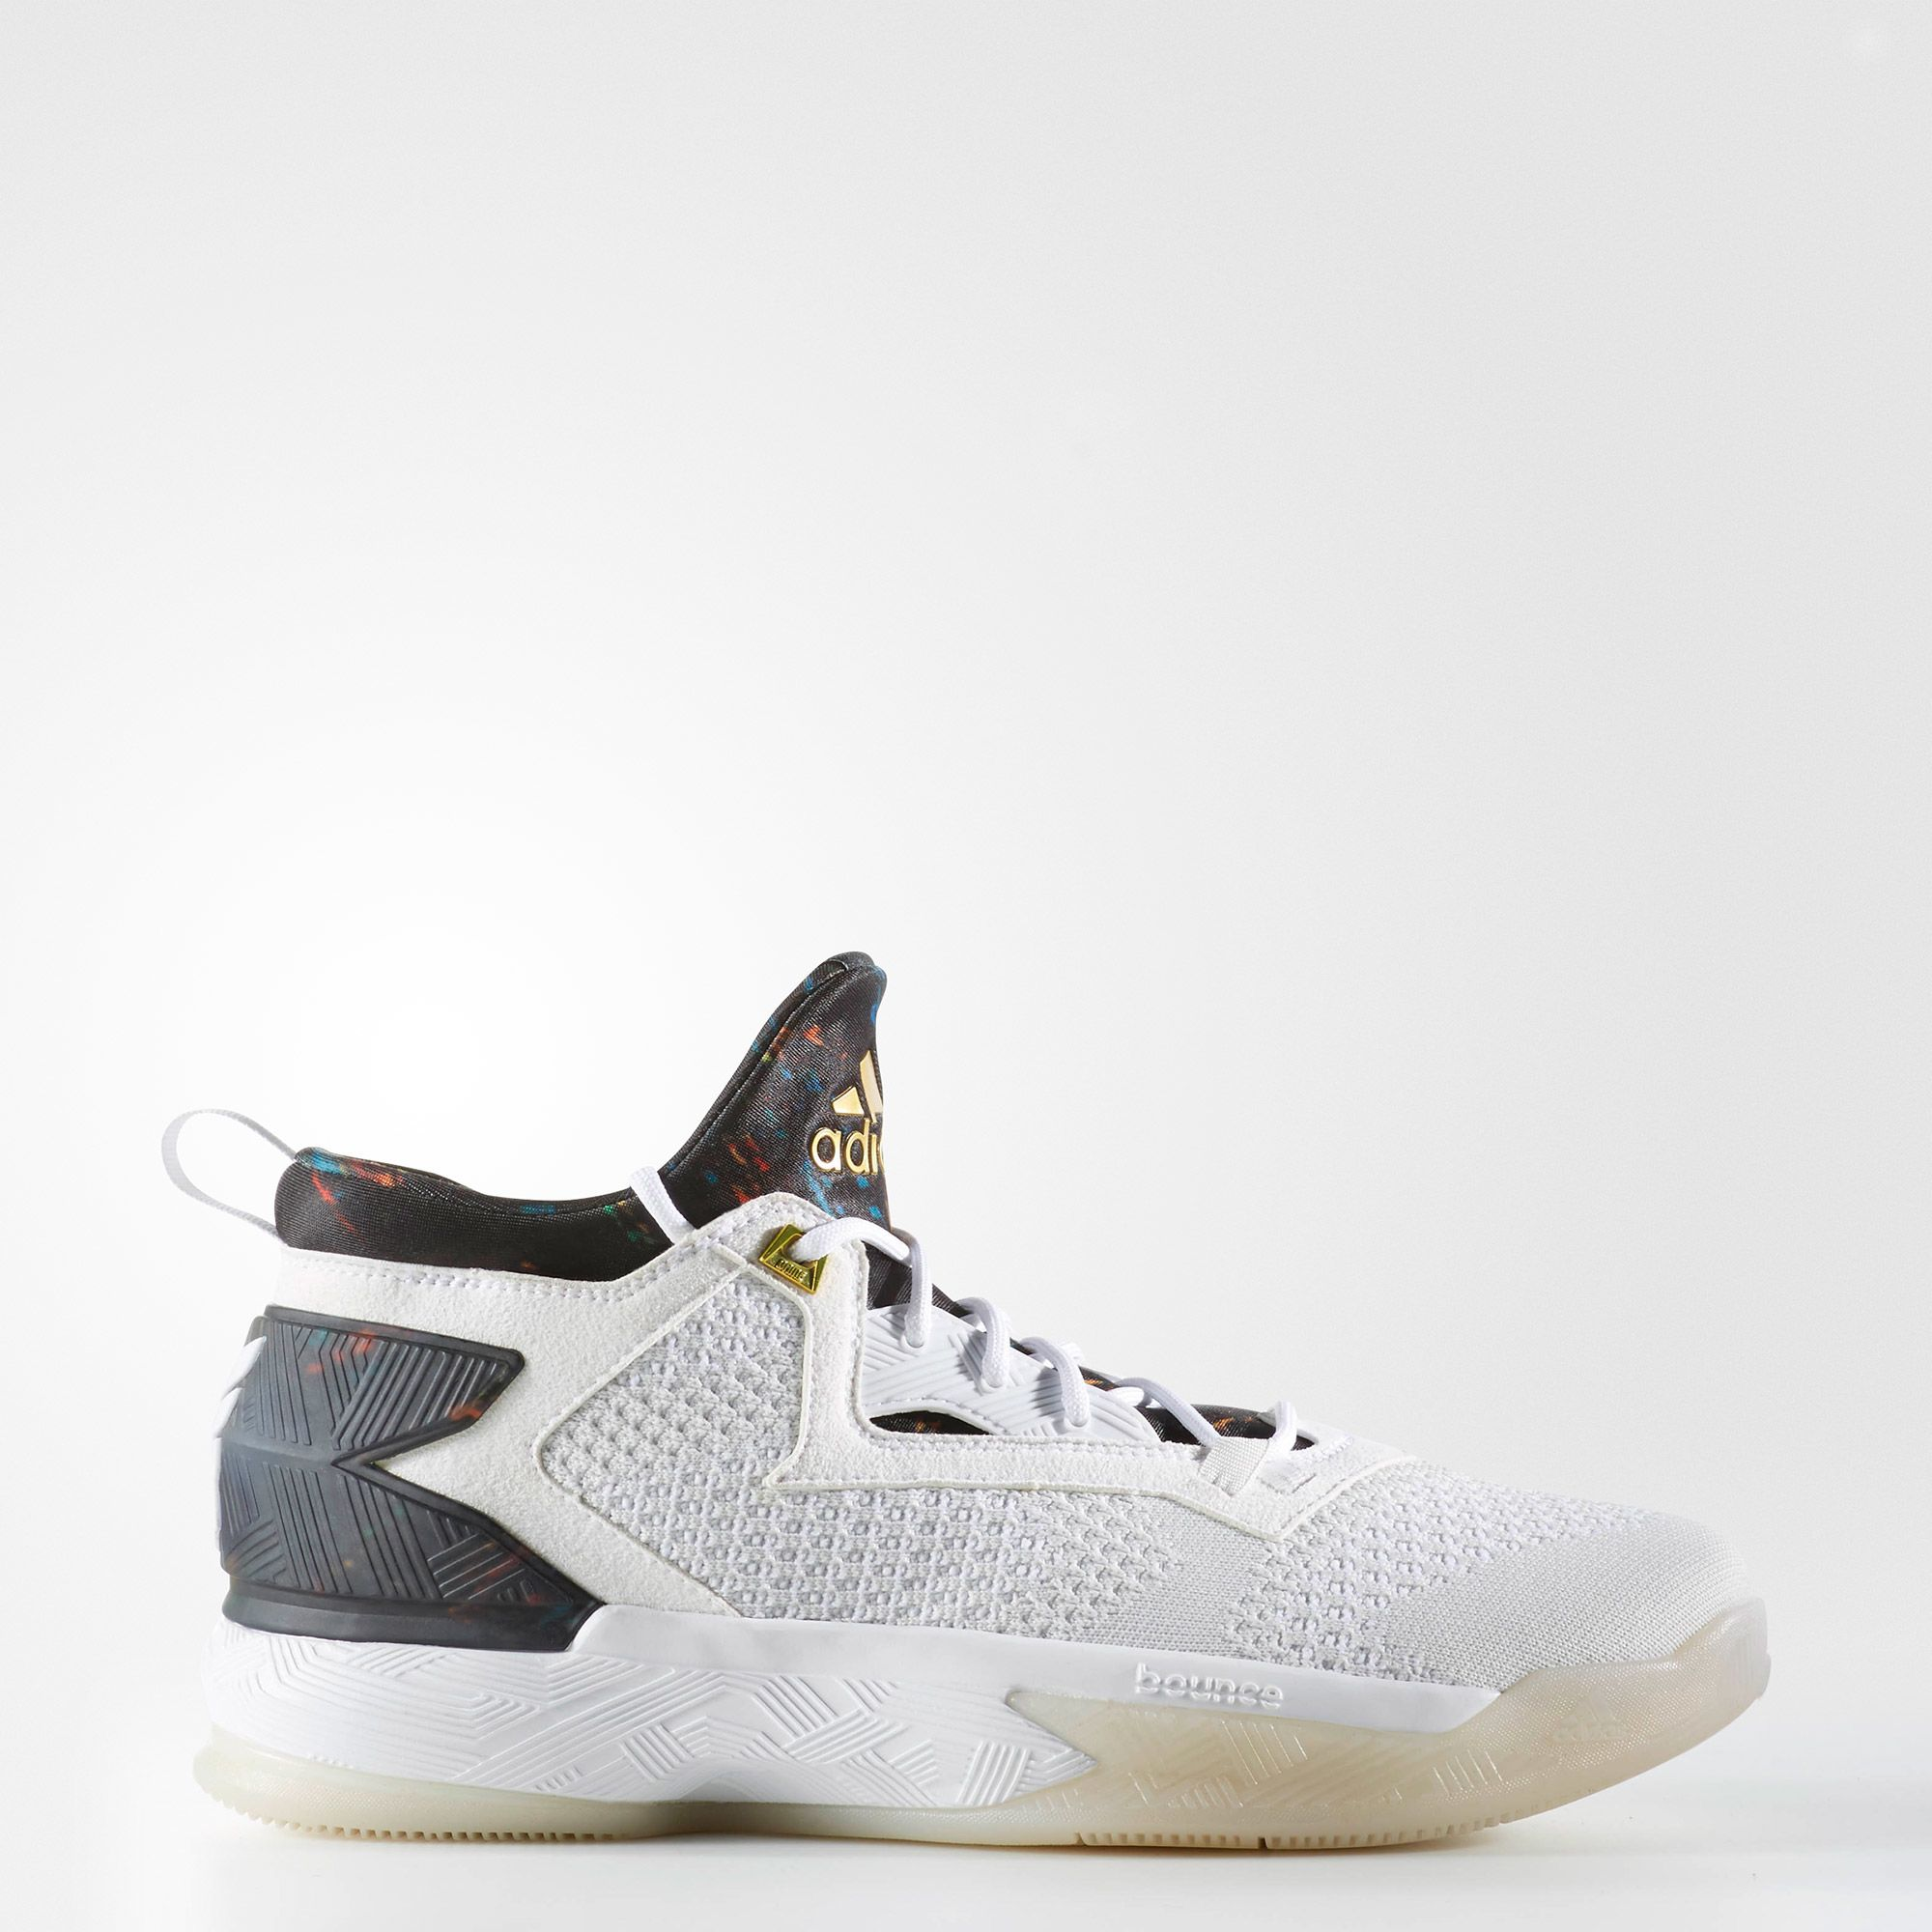 The adidas D Lillard 2 isn't Done Yet 1